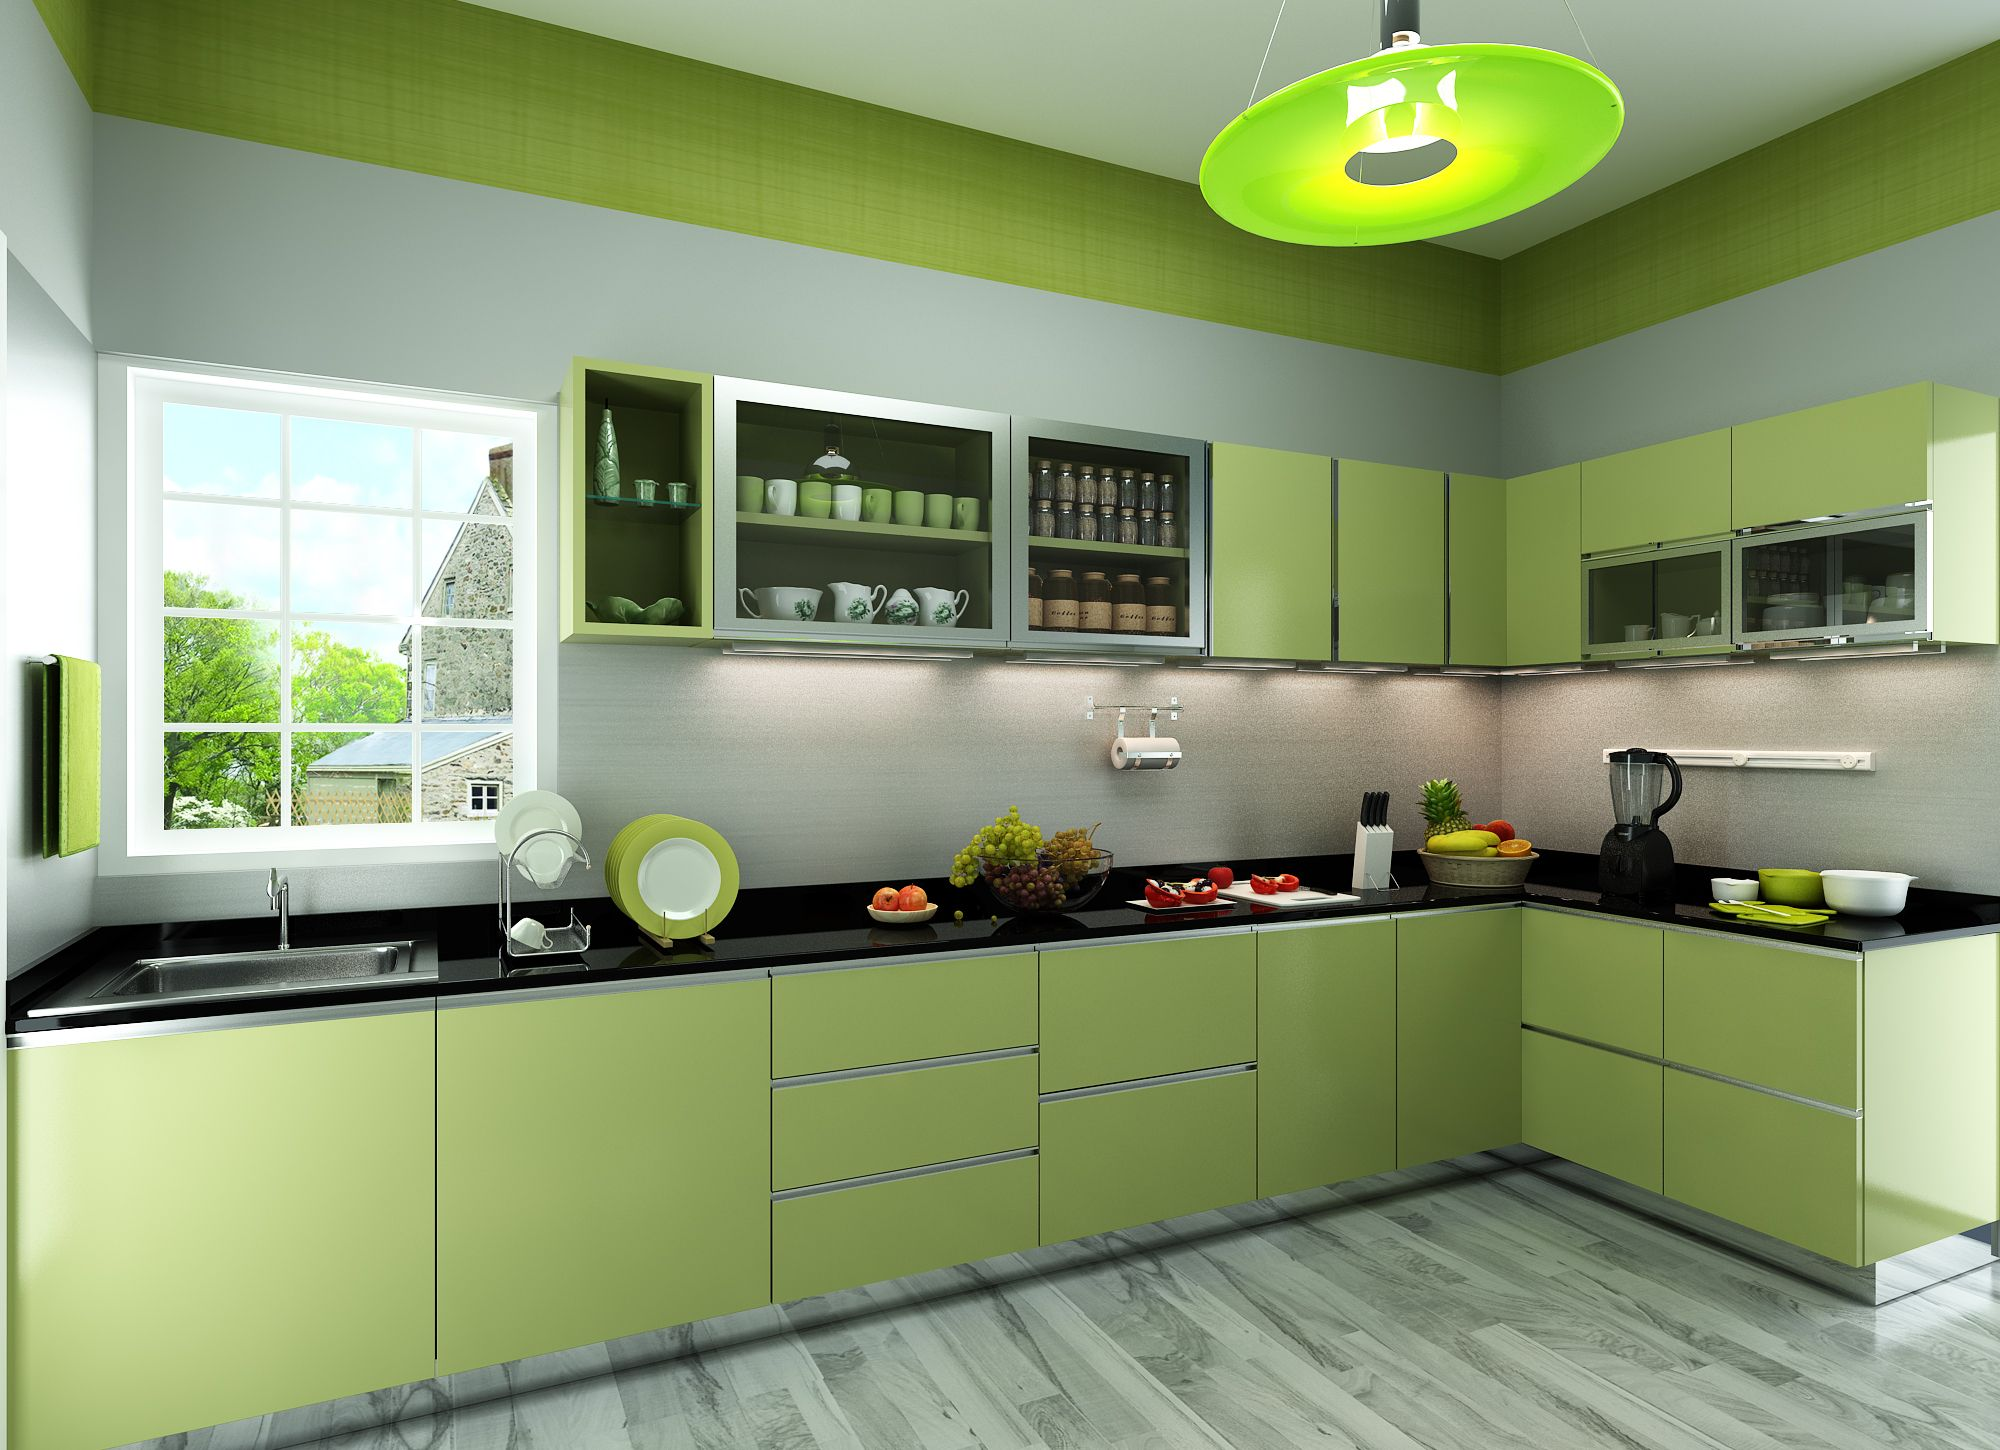 girgit is one of the best modular kitchen in bangalore.they provide